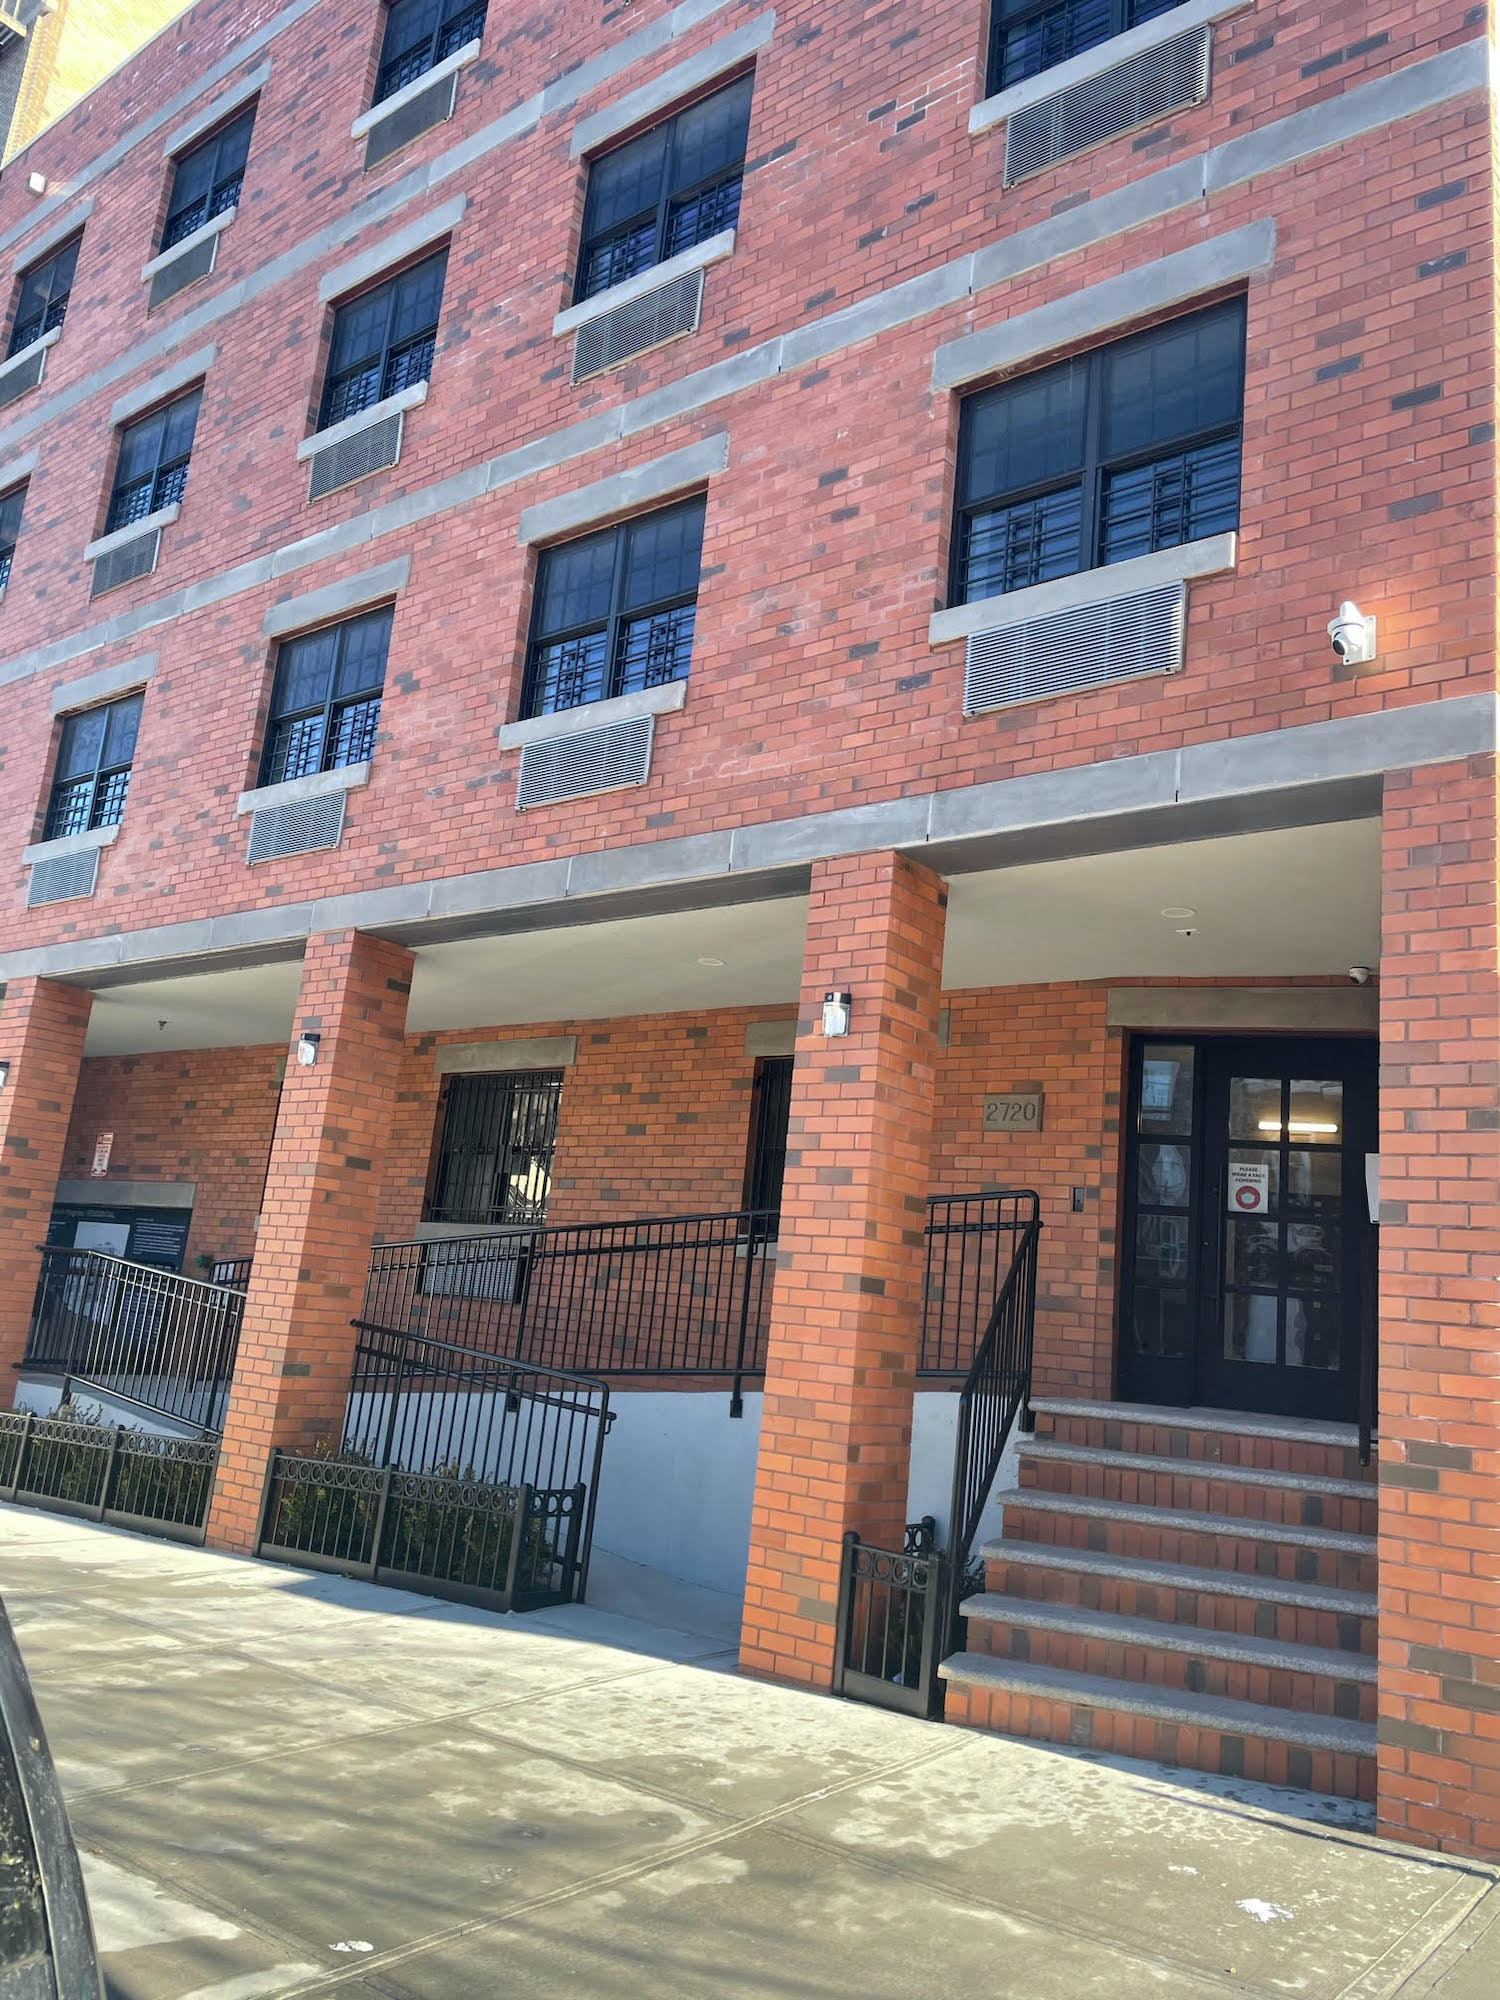 2720 Claflin Avenue in Kingsbridge Heights, The Bronx. Image courtesy of NY Housing Connect